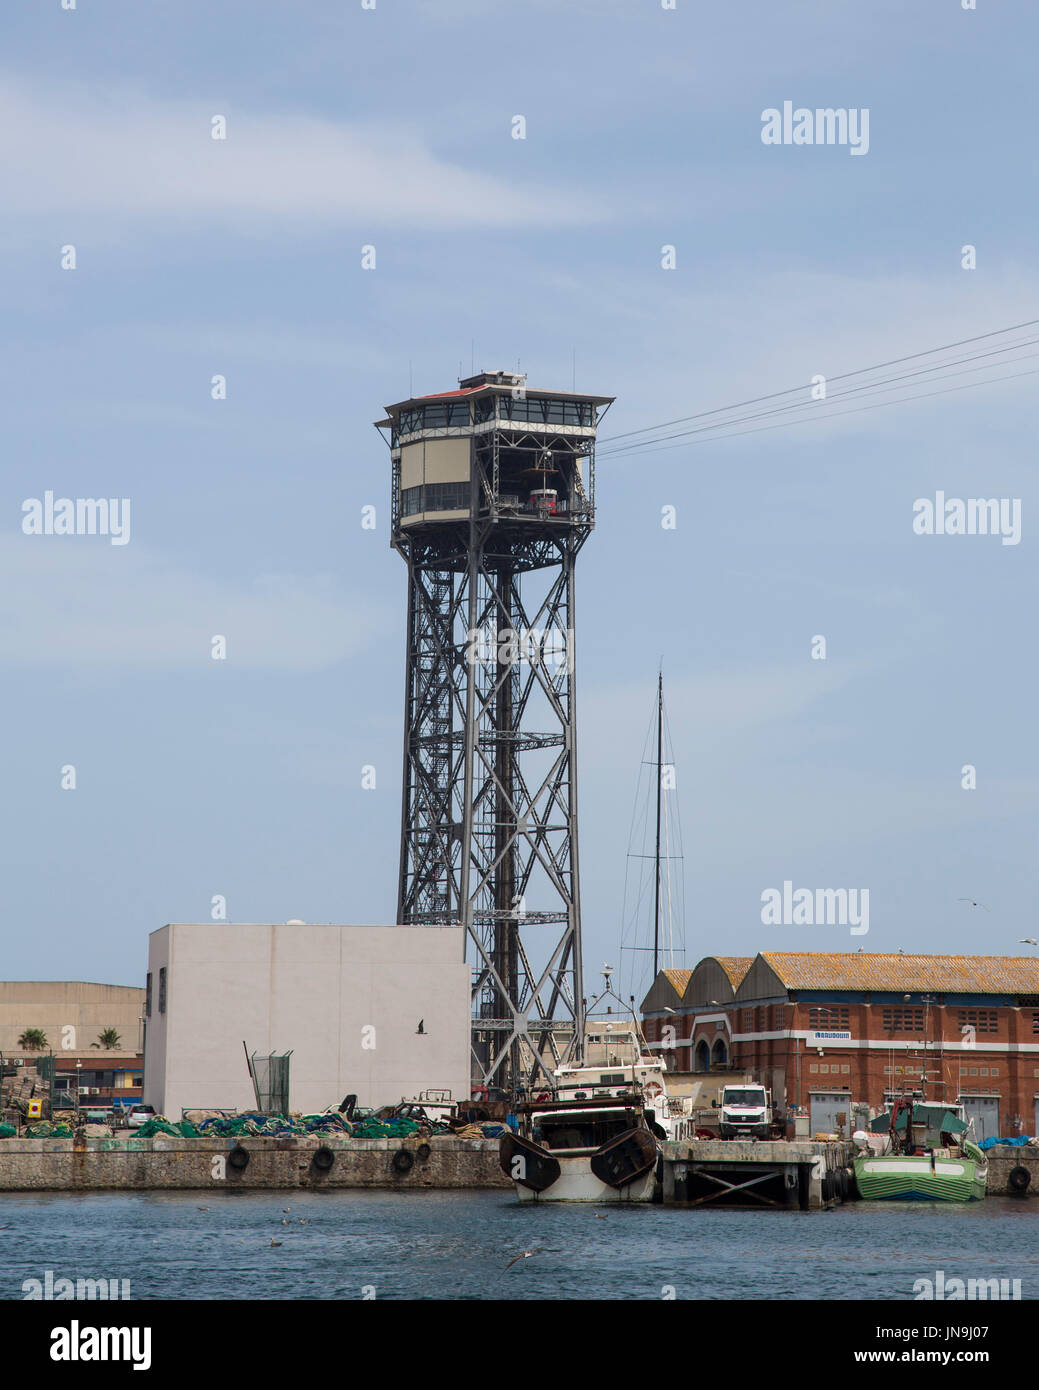 The end tower of the cable car to Mont Juic in Barcelona, Spain - Stock Image